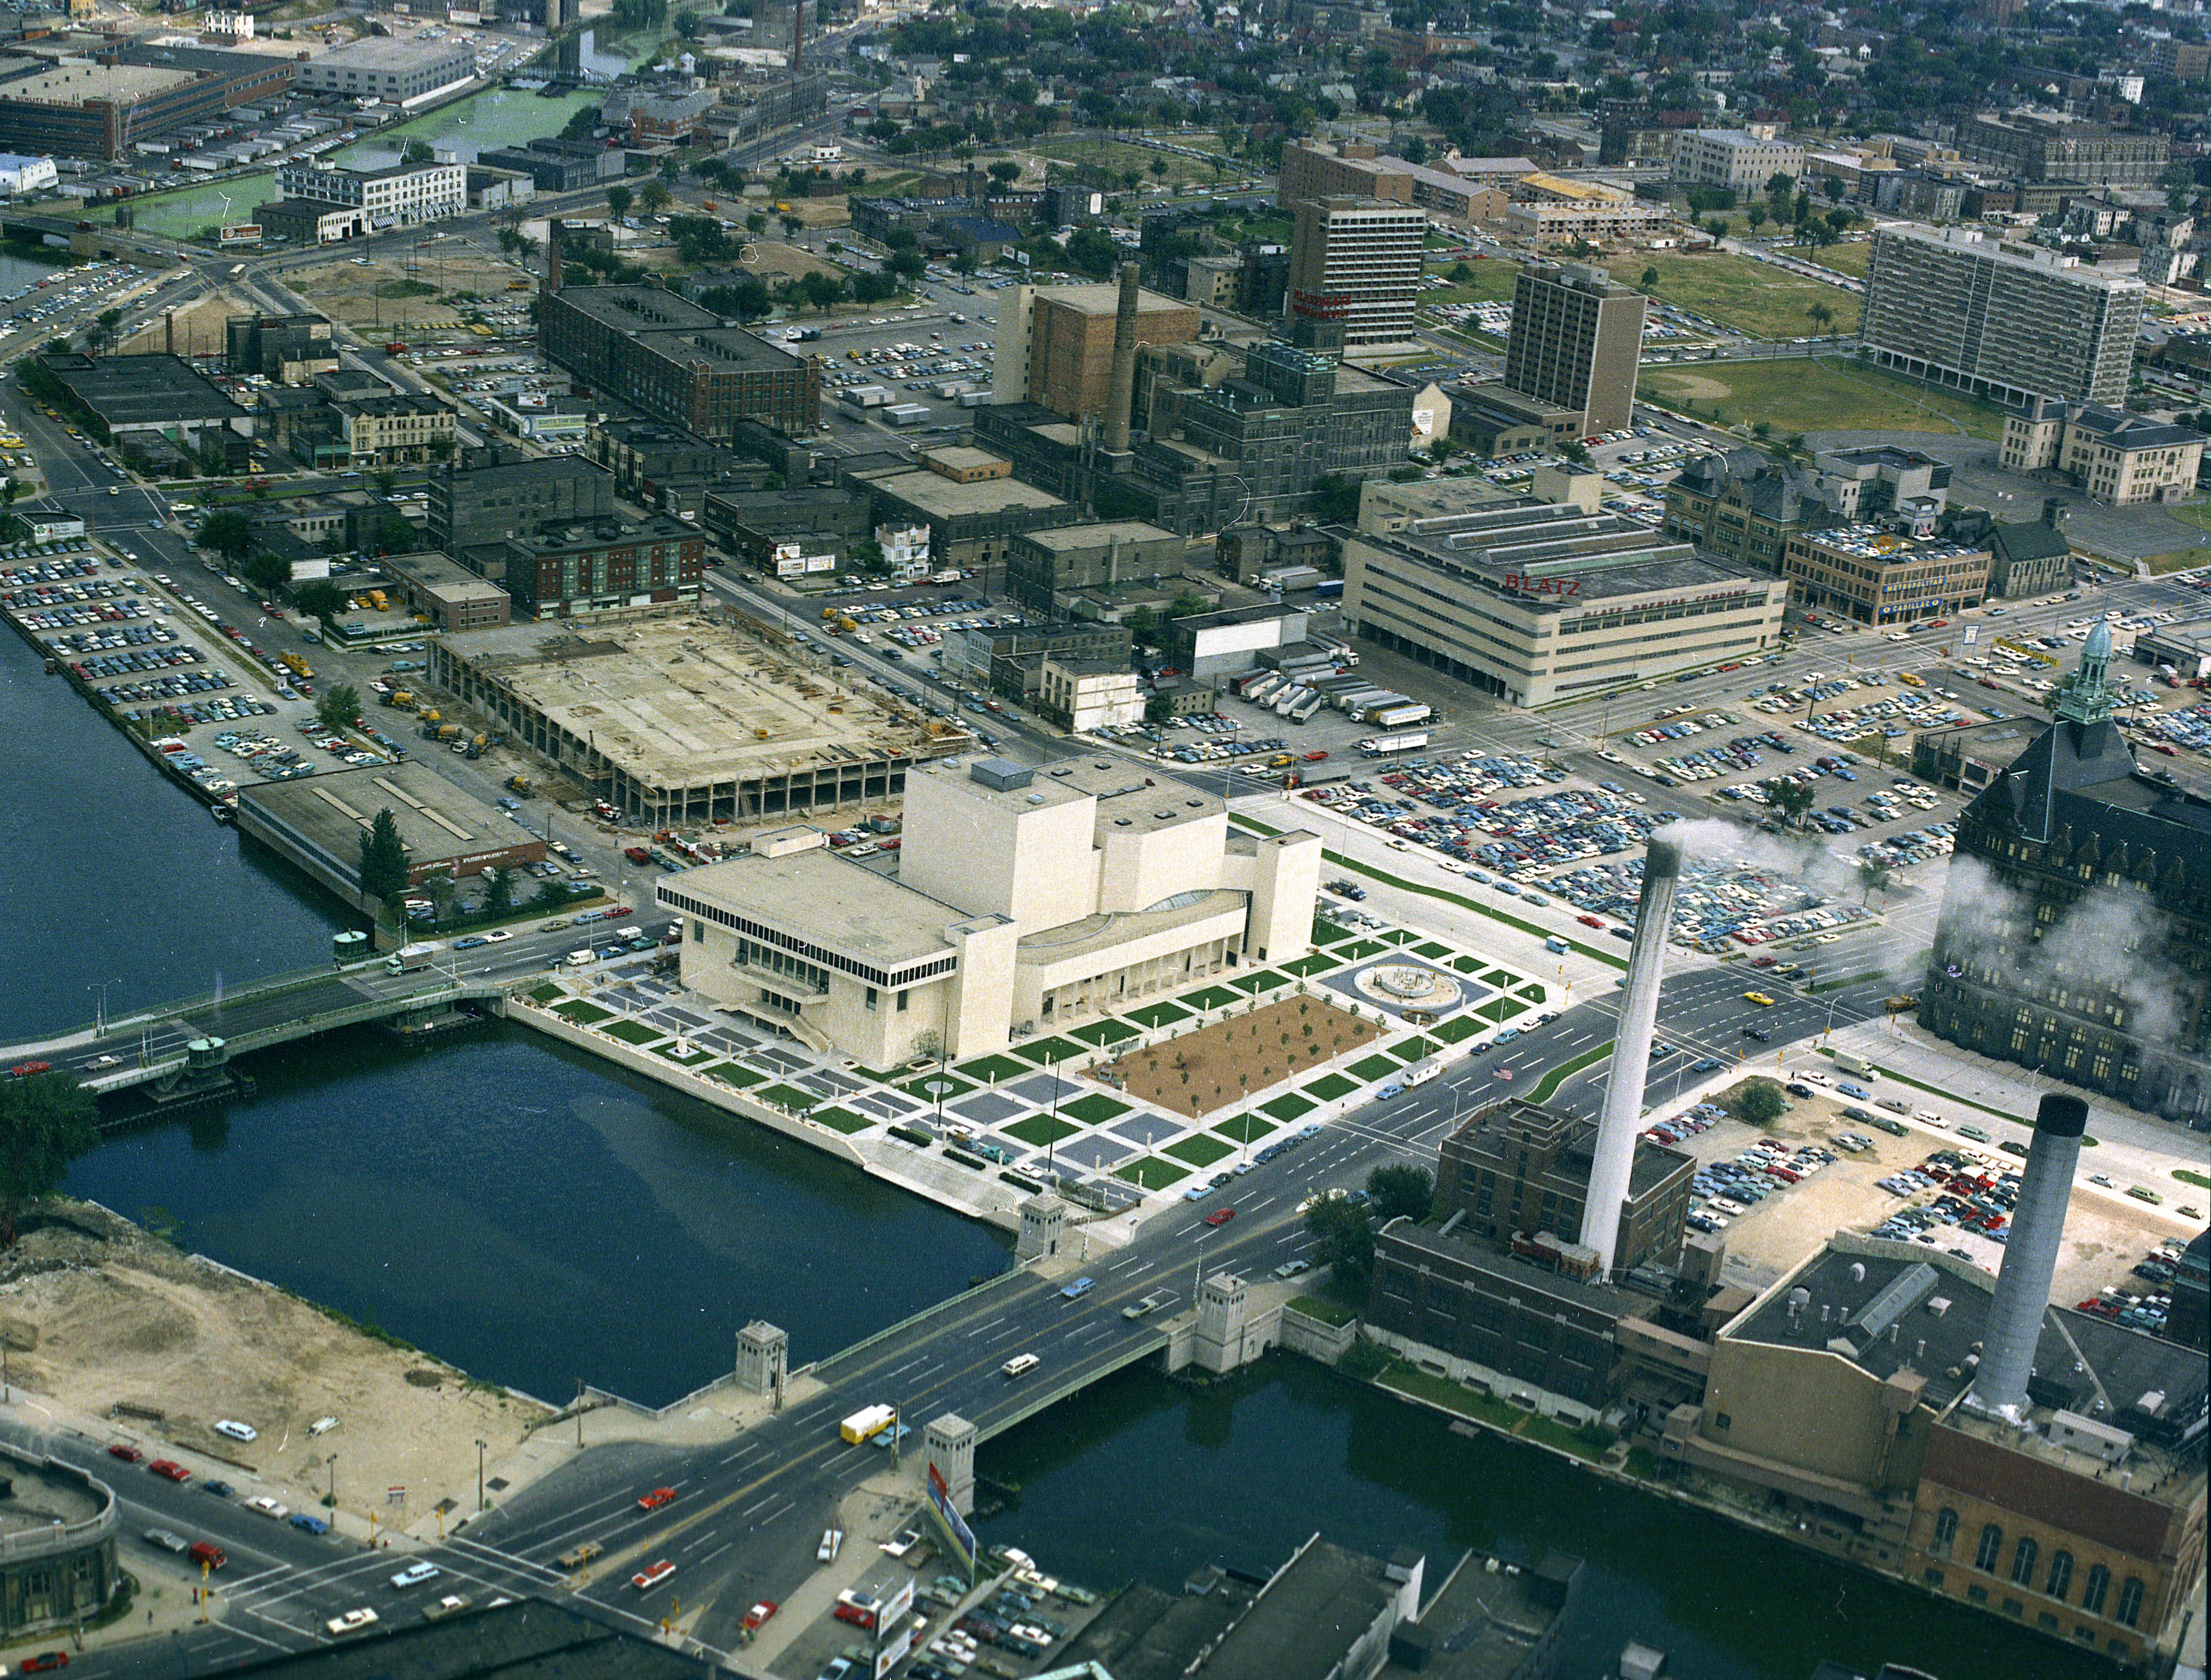 2x2 color film negative of the new Milwaukee Performing Arts Center (now known as the Marcus Center for the Performing Arts) or PAC at 929 N. Water St. Construction began on June 27, 1966, and it opened on July 26, 1969. This is an aerial photo of downtown west of the river looking northeast. In the background you can see the construction for the connected parking structure. Date is 9/8/1969  exterior, building, music, performance, stage, theater, Uihlein Hall, Todd Wehr hall, Peck Pavilion.